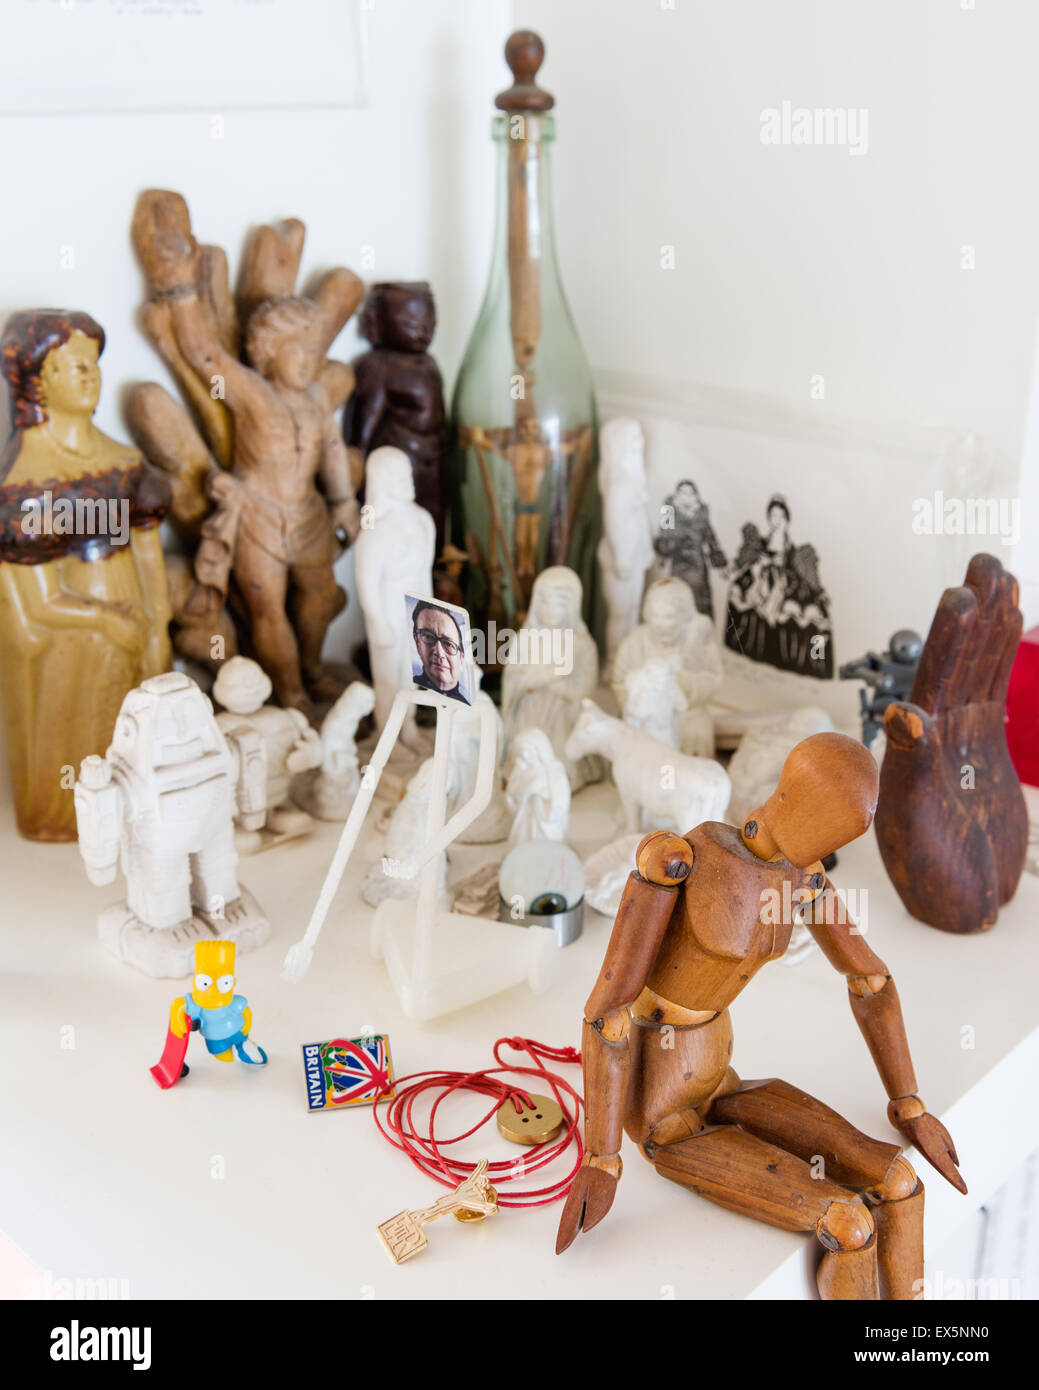 Artists wooden mannequin surrounded by small sculpted figurines - Stock Image